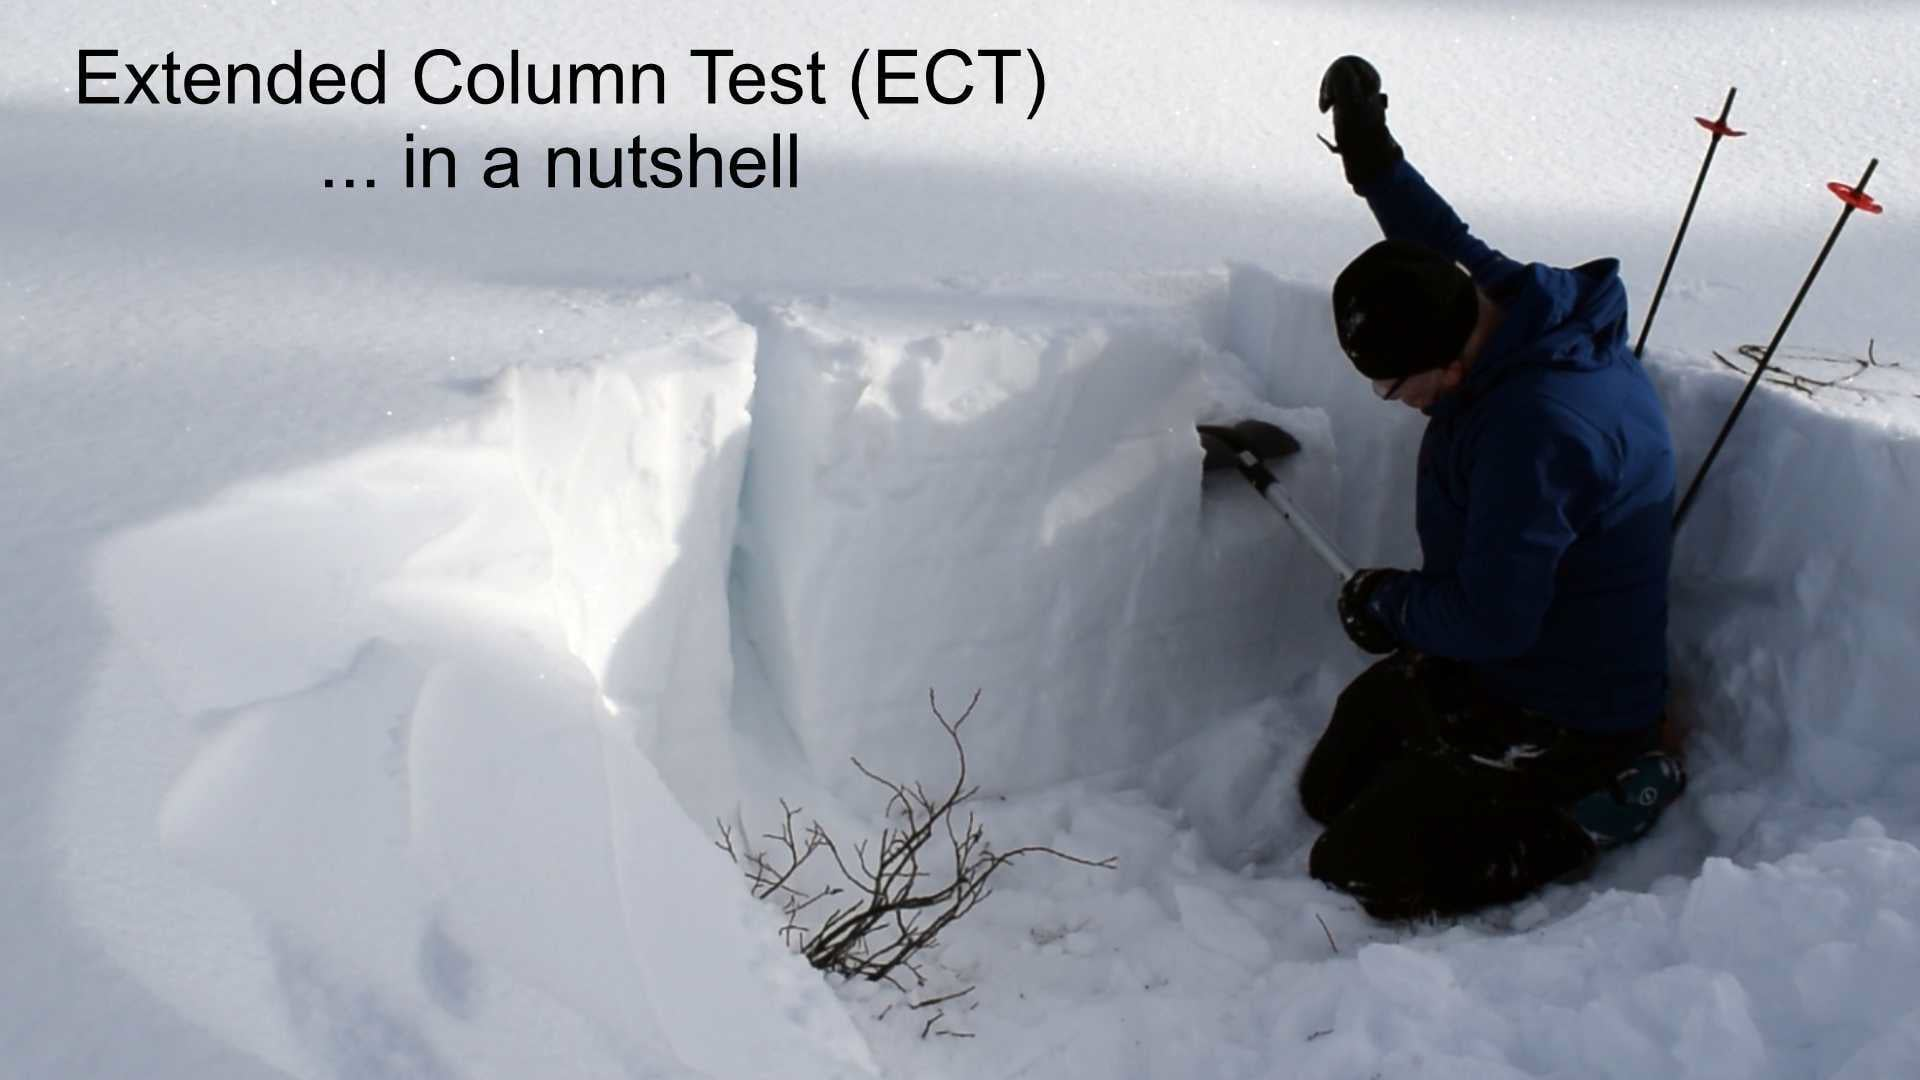 The Extended Column Test (ECT) in a nutshell